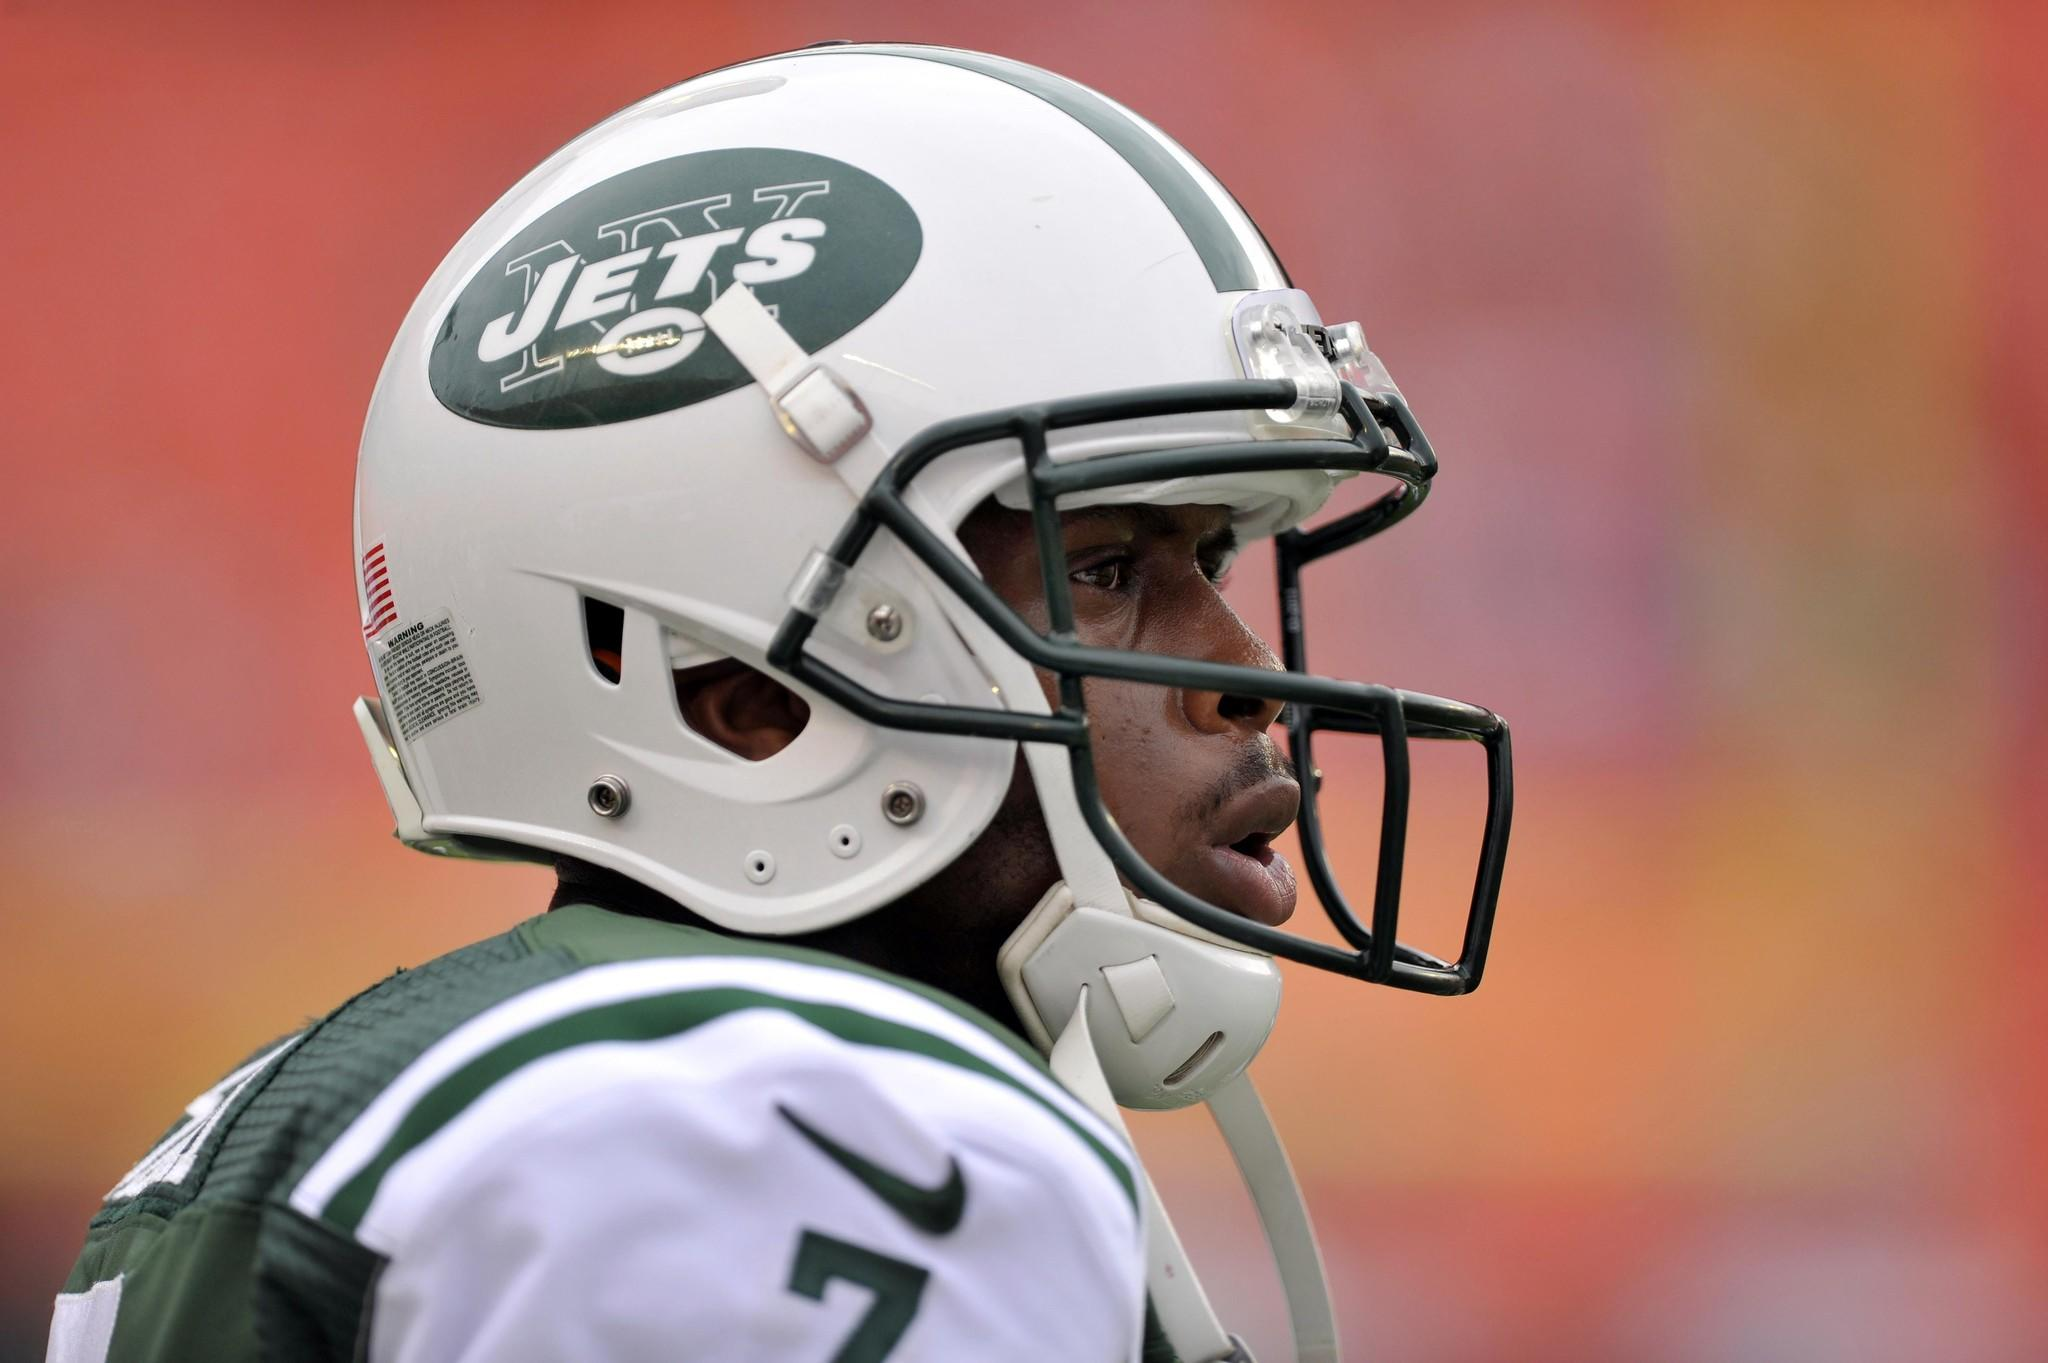 New York Jets quarterback Geno Smith has received an apology from Virgin America.